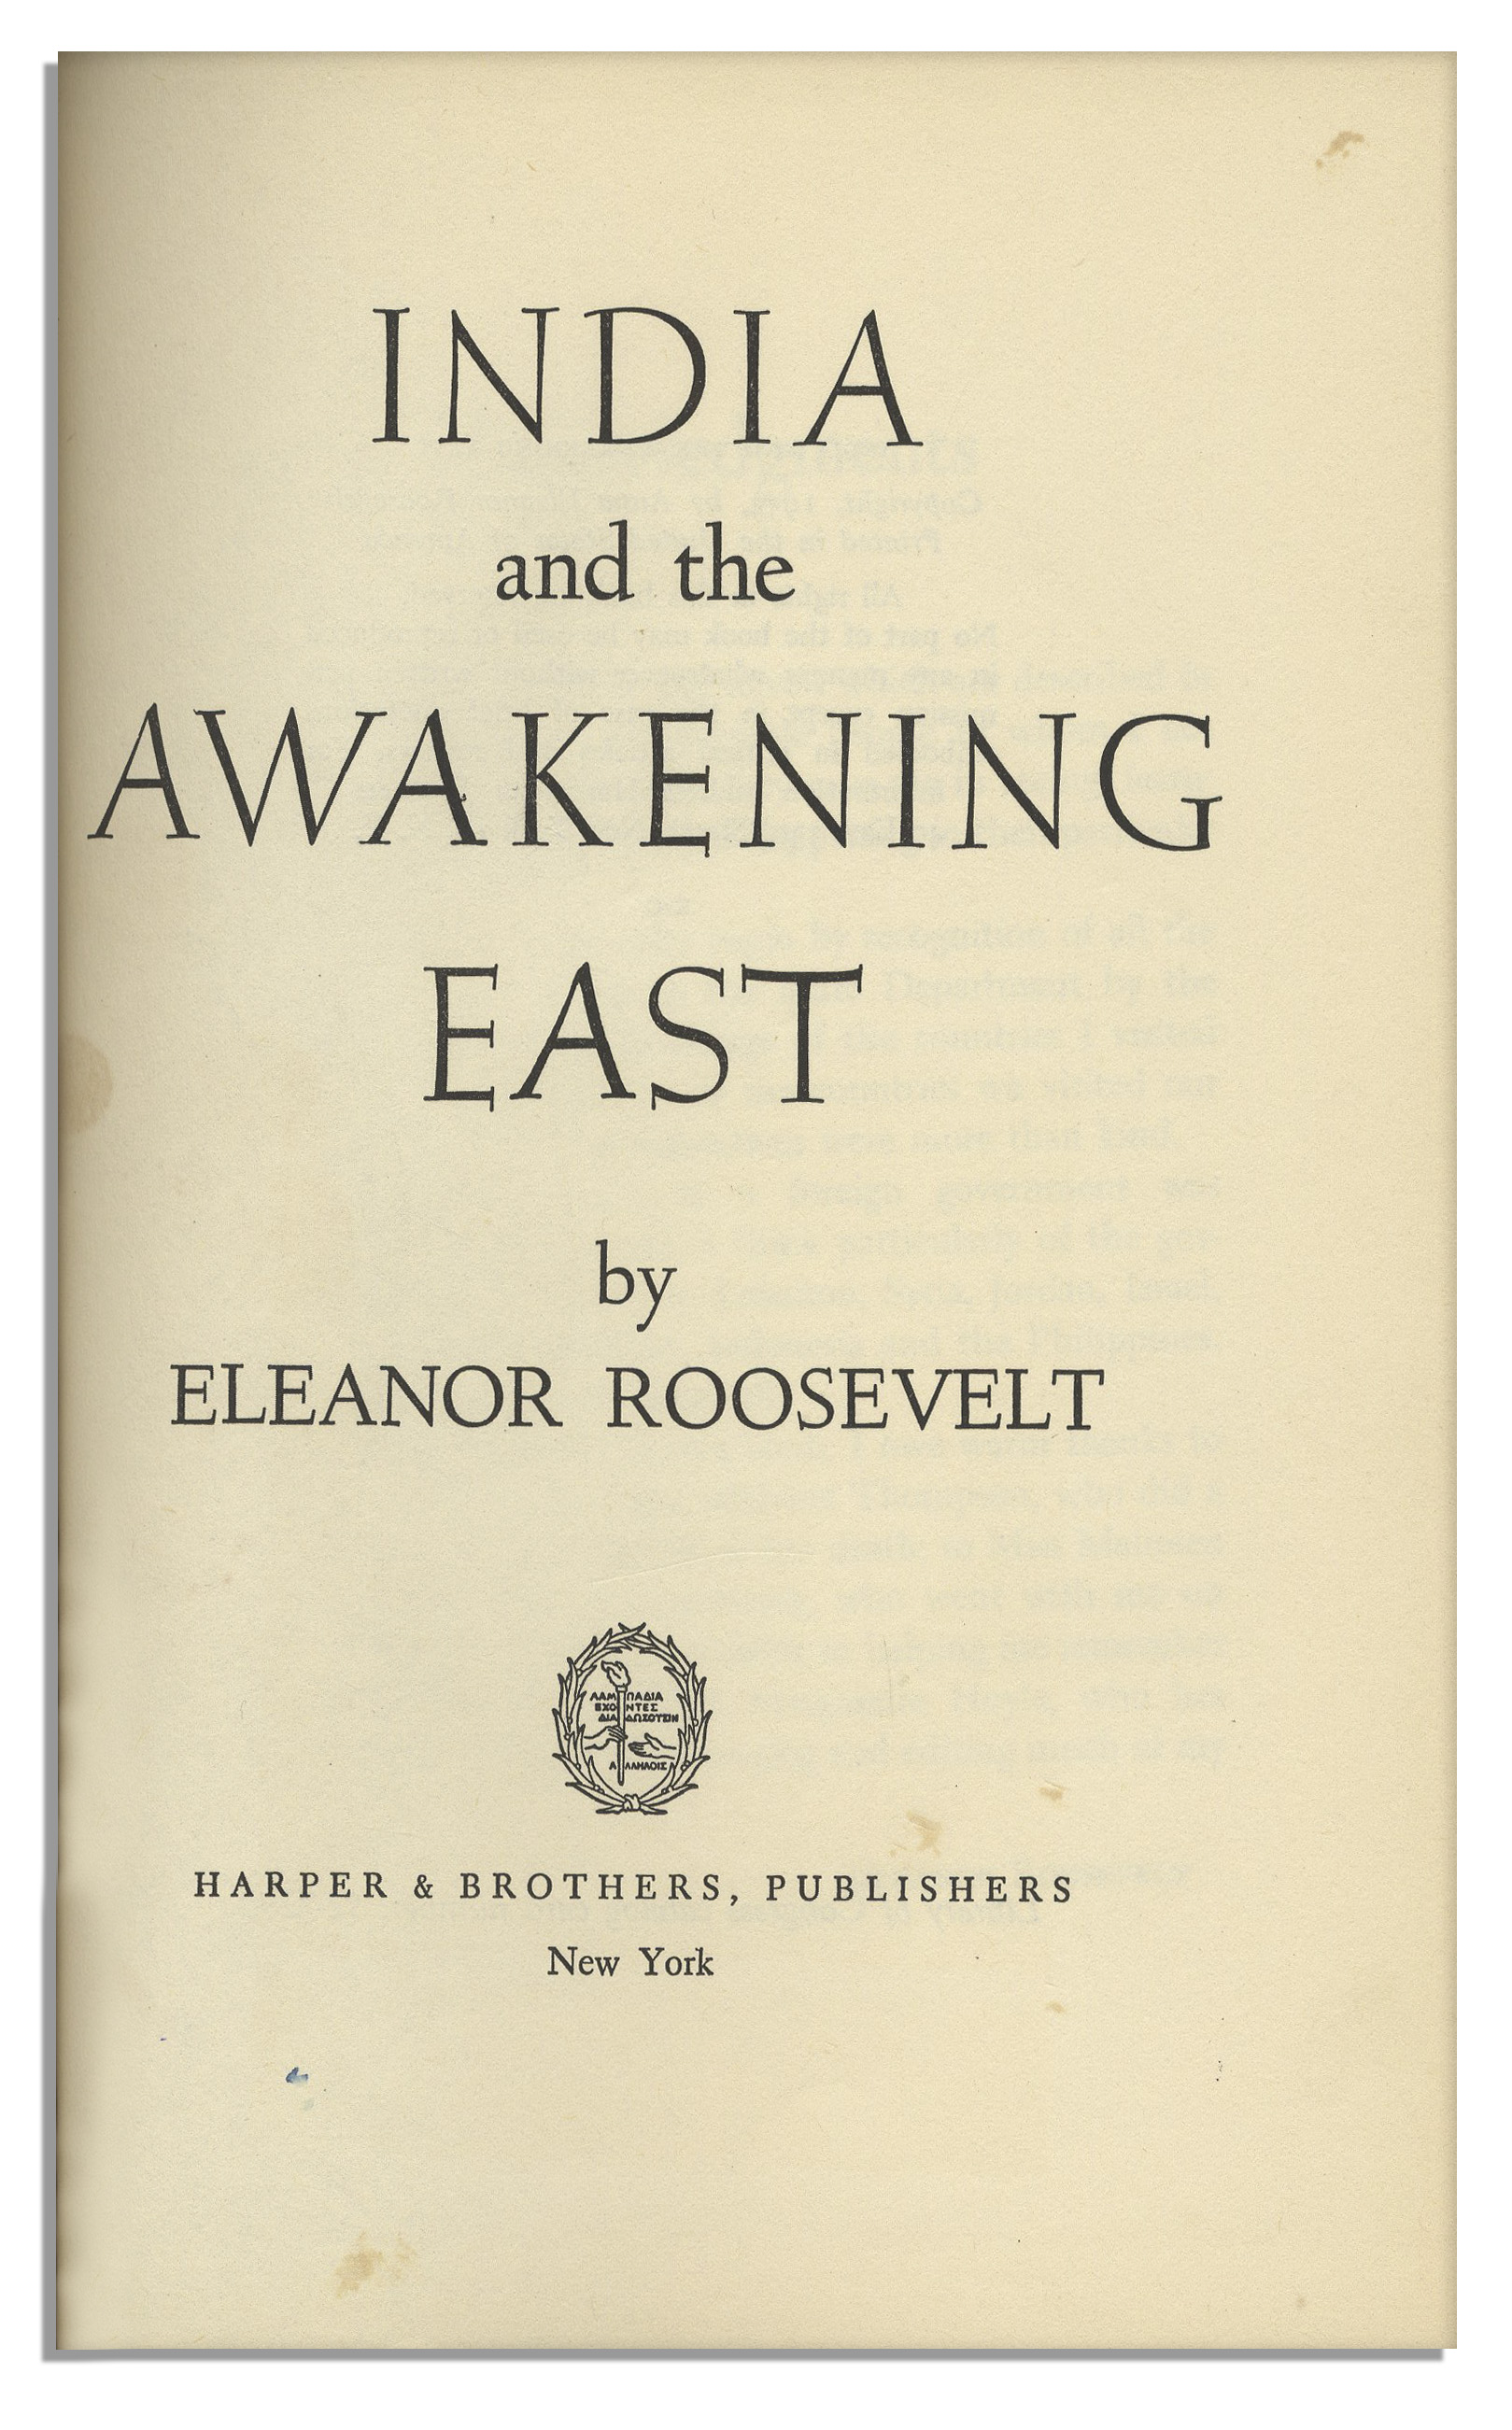 role model review essay eleanor roosevelt The book deals with the life and impact of eleanor roosevelt eleanor eleanor roosevelt biography review eleanor roosevelt changed the role of the first.